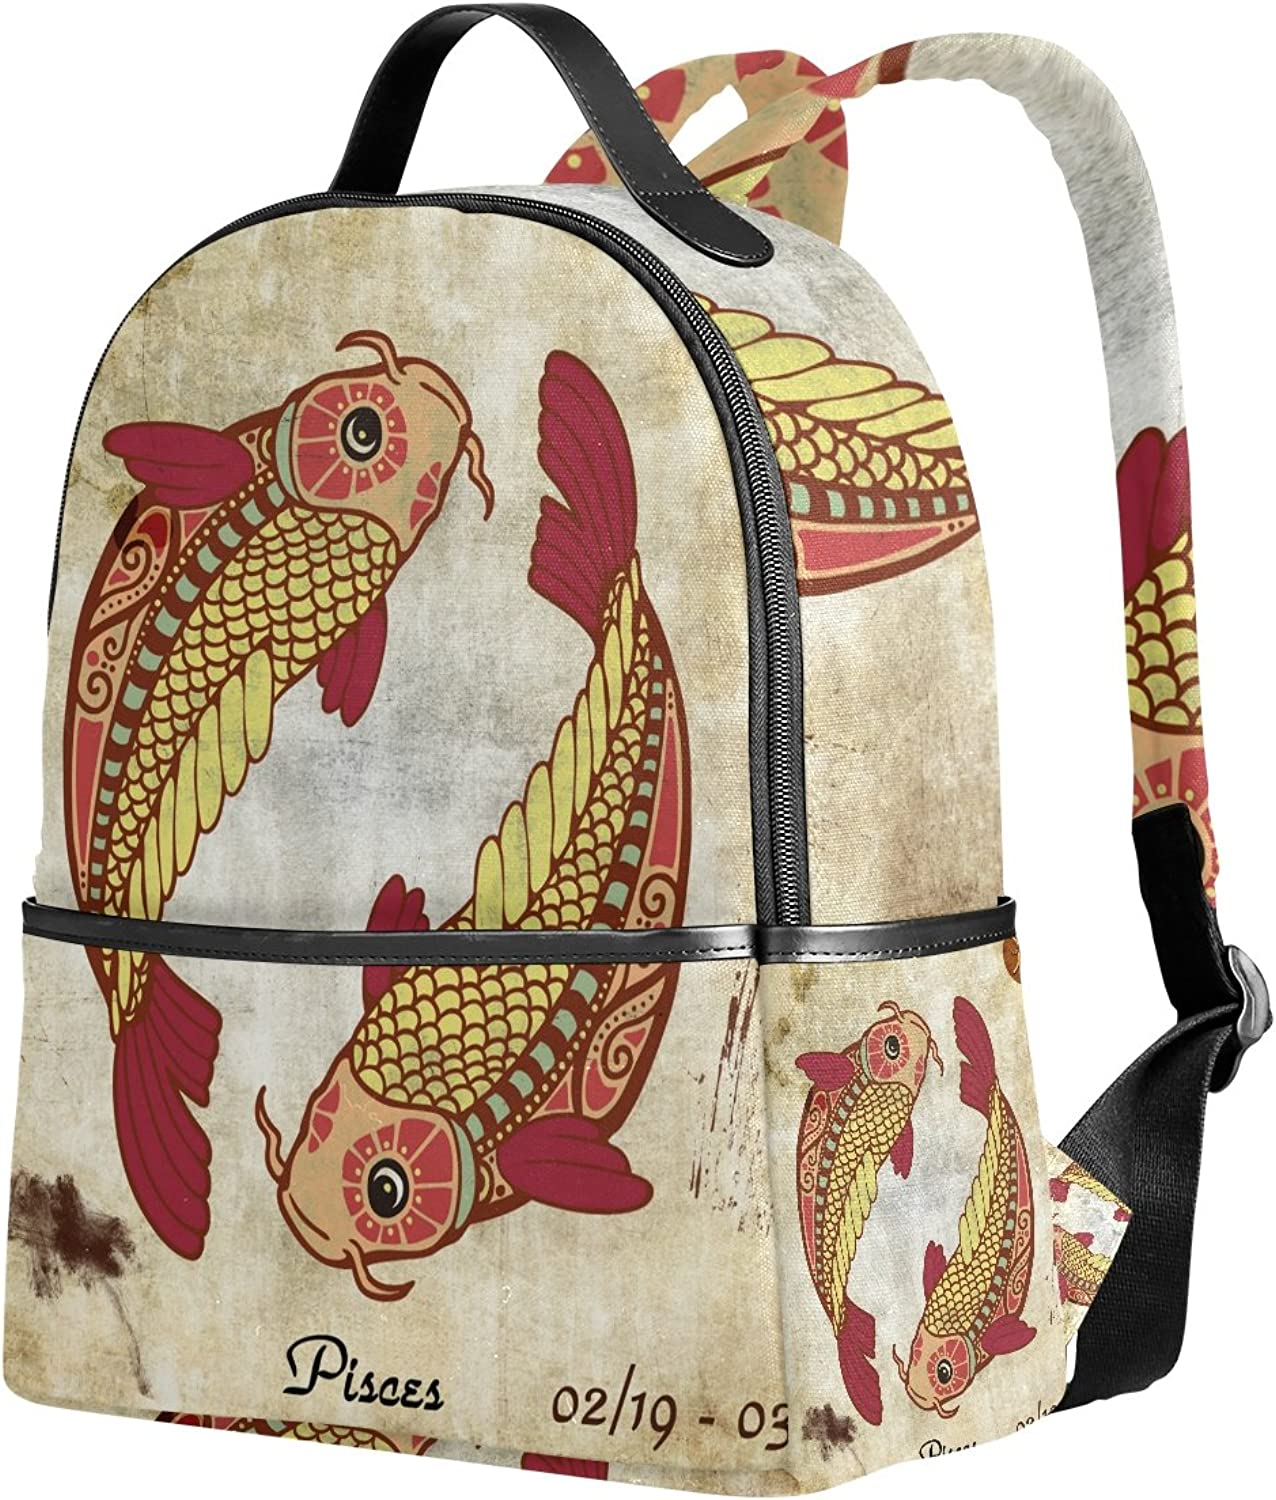 ab22c2d1616f Zodiac Sign Unisex Rucksack Canvas Satchel Casual Daypack,School ...